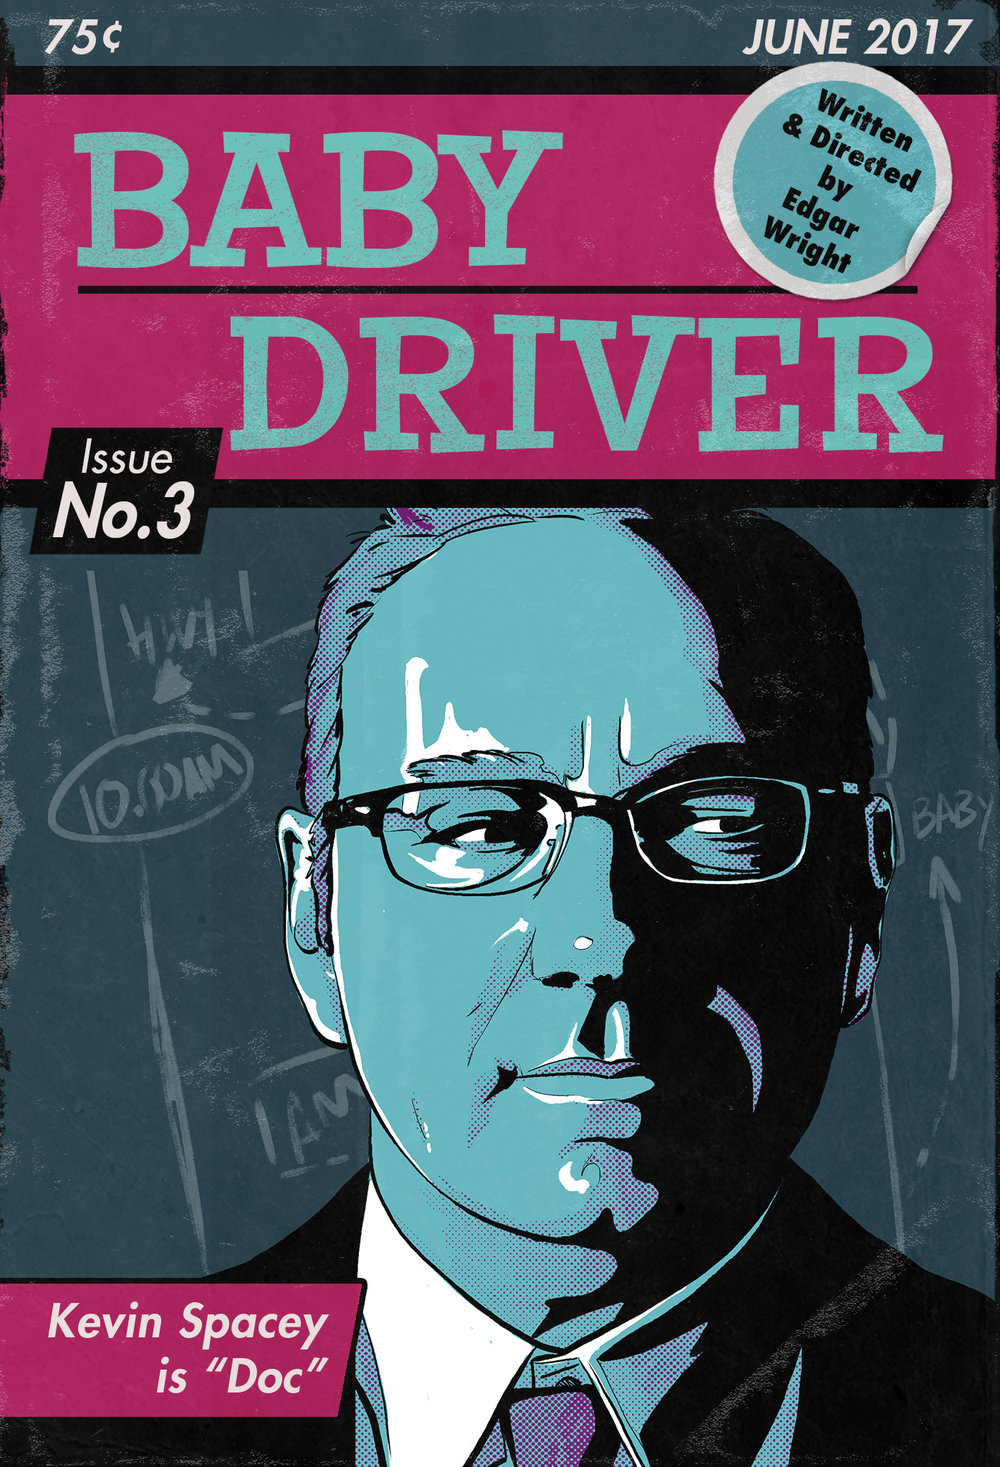 Baby Driver Poster No. 3 - Kevin Spacey